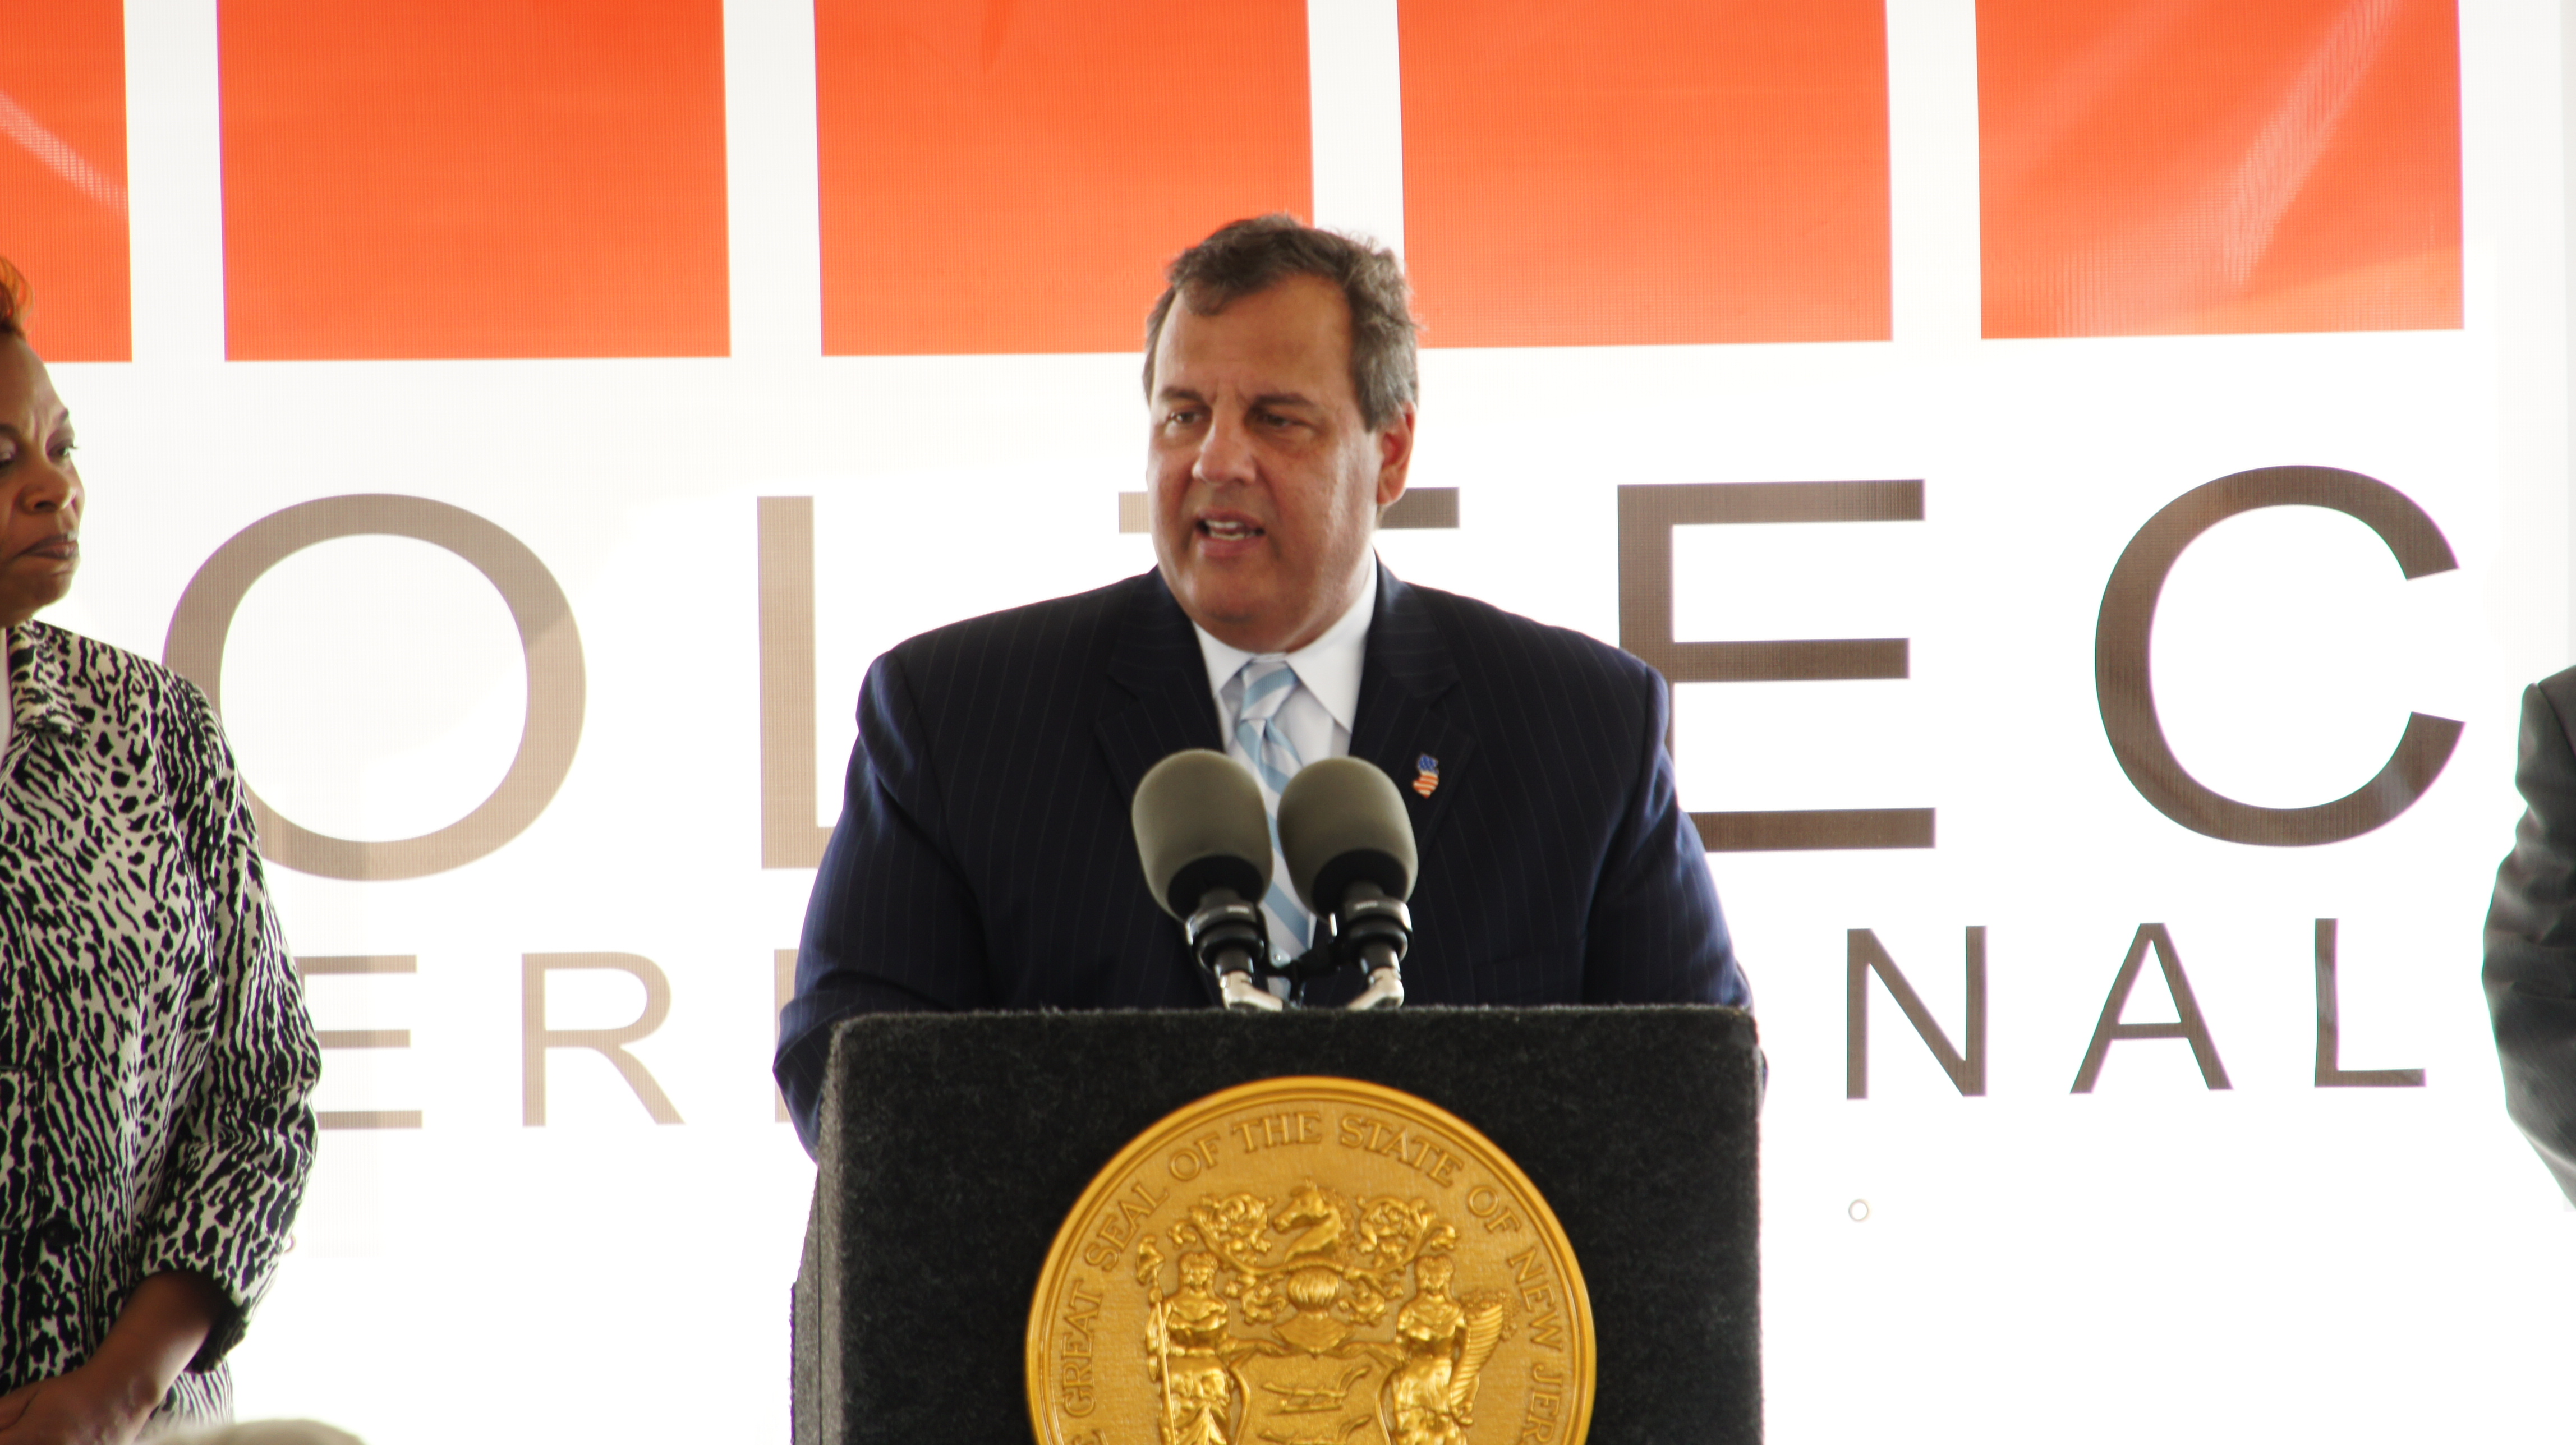 NJ Governor Chris Christie Lauds Holtec's Planned Technology Center in Camden, Citing it as the Largest Private Investment in the City's History